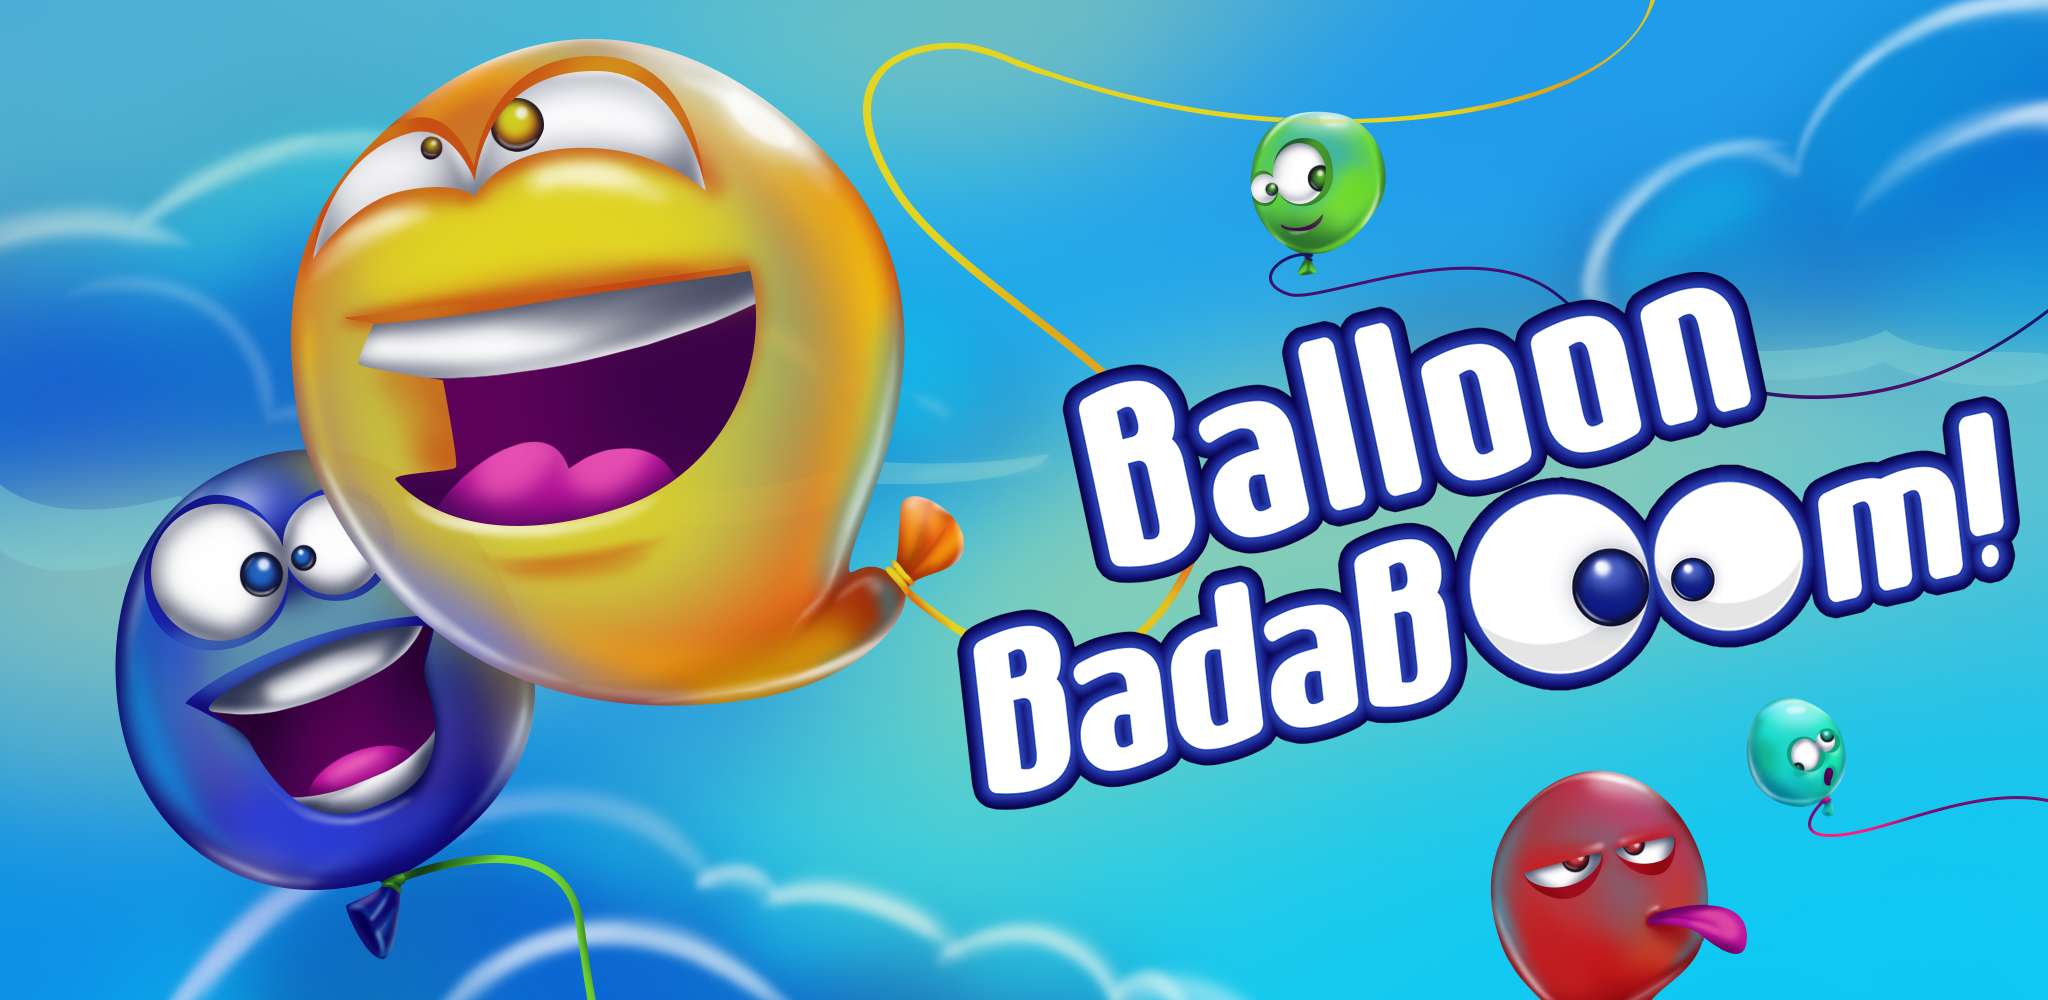 Balloon BadaBoom!